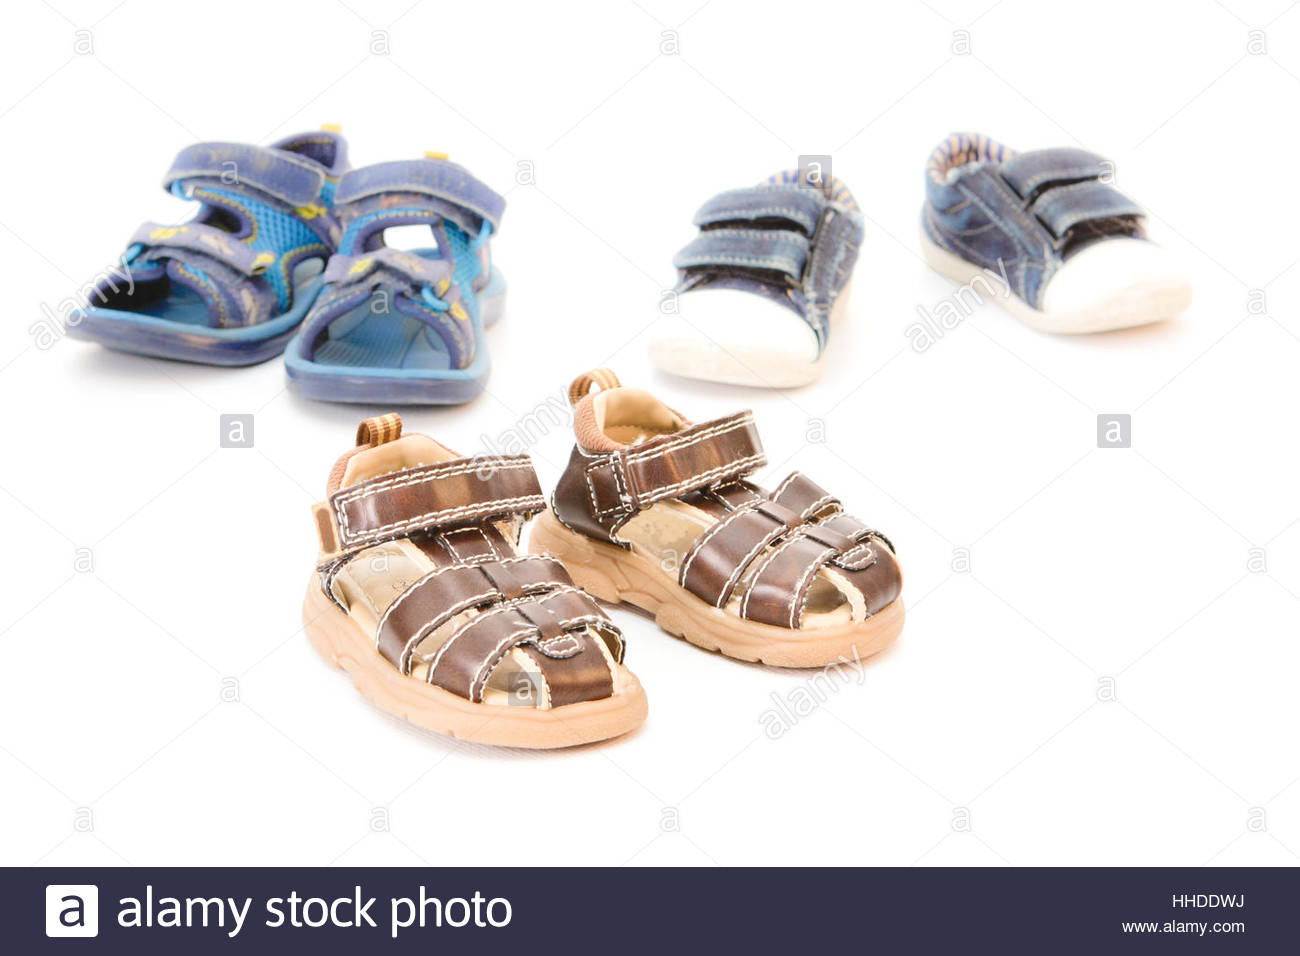 isolated, shoes, leather, feet, ankle-strap sandal, sandals, sandal, second Stock Photo